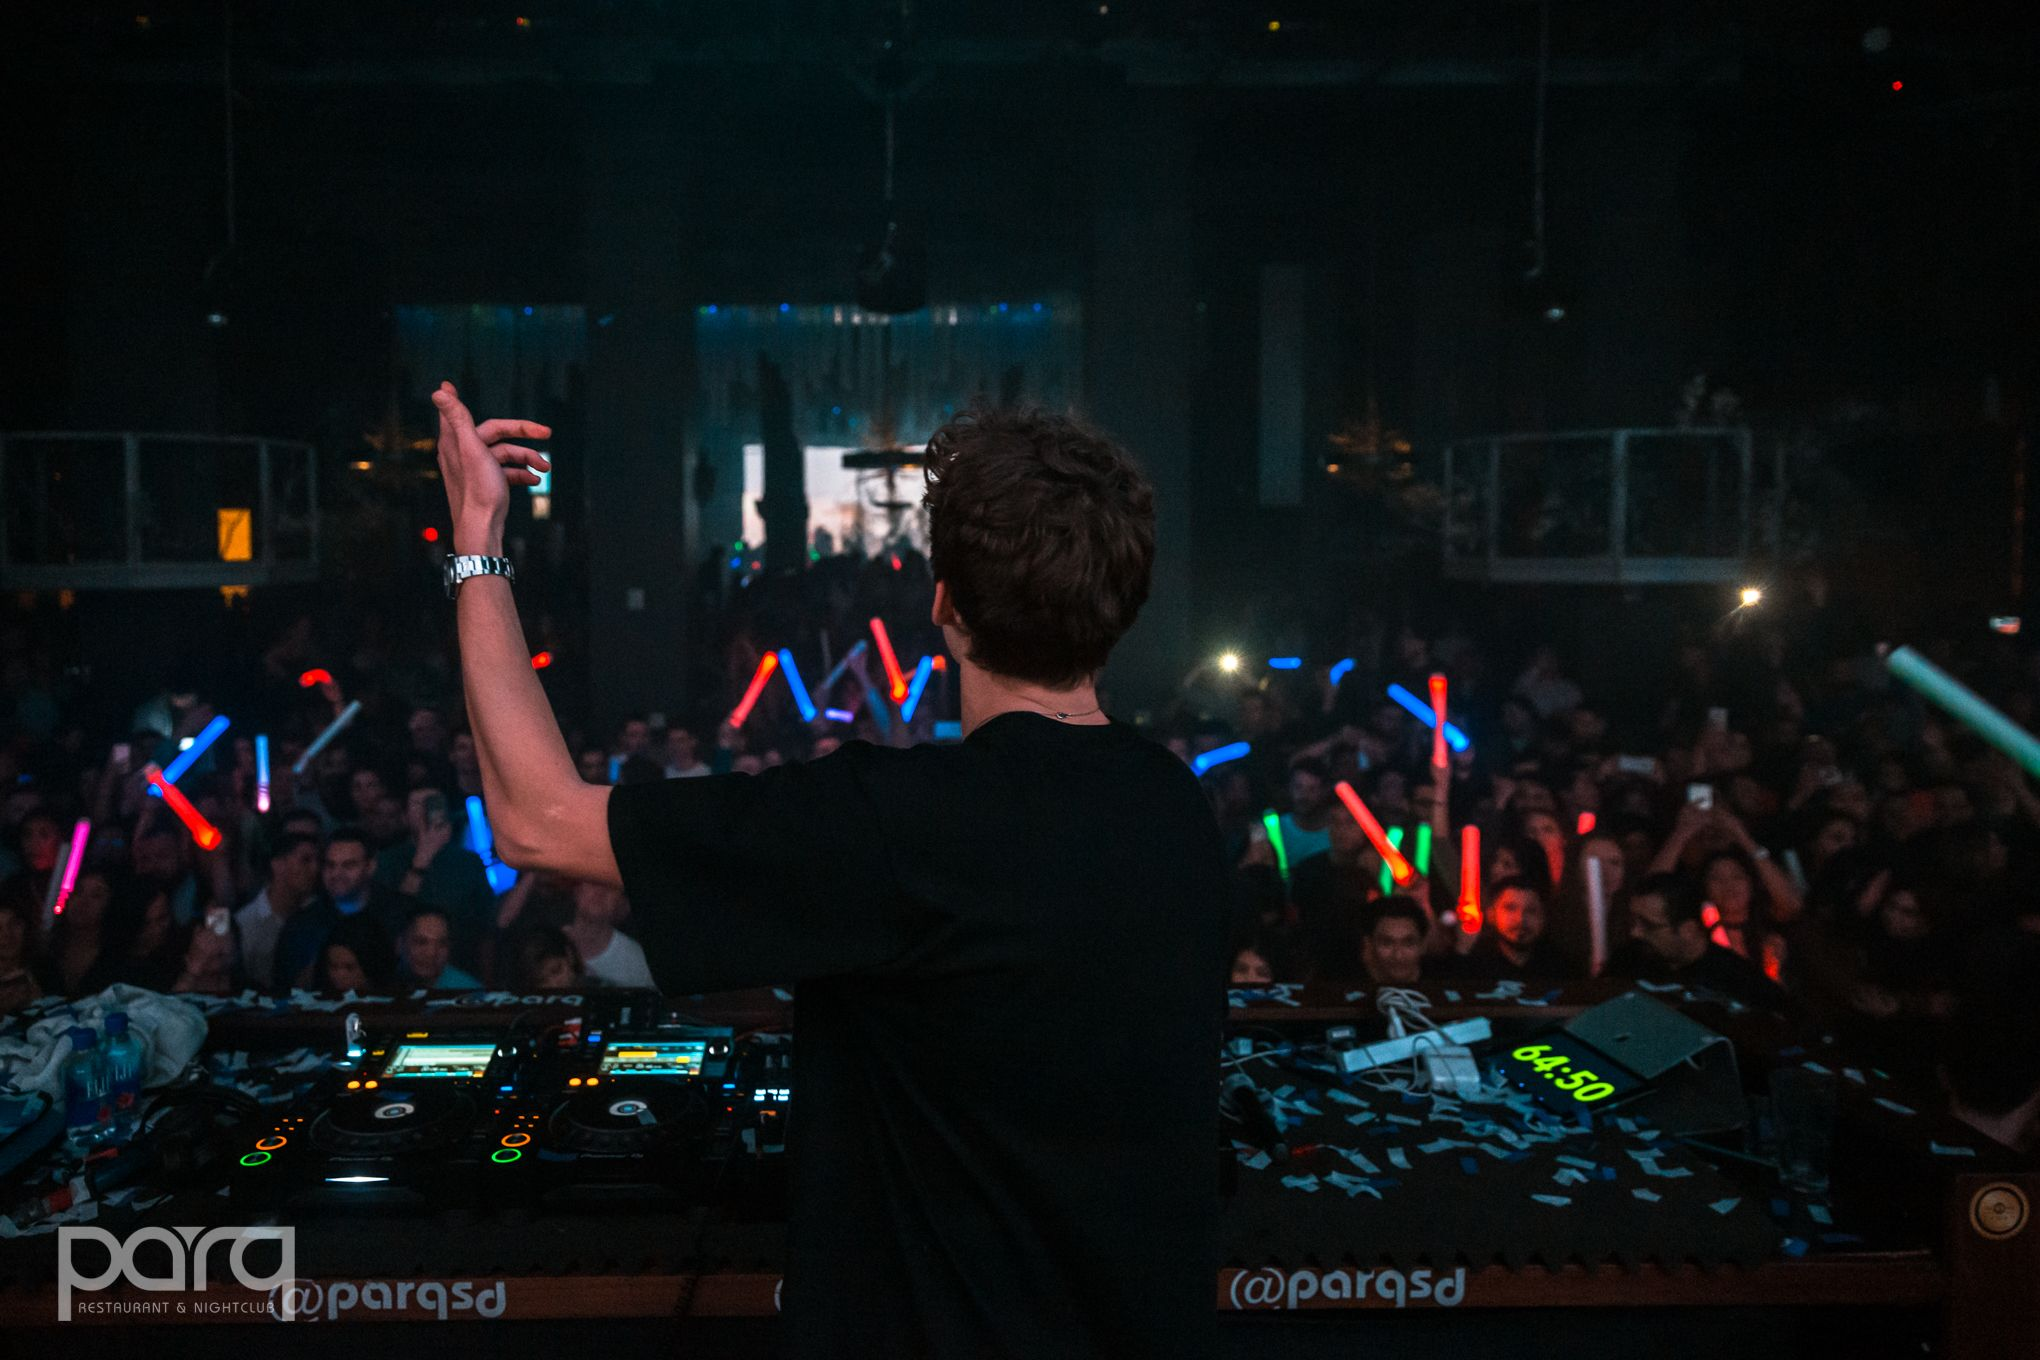 02.23.19 Parq - Lost Frequencies-23.jpg